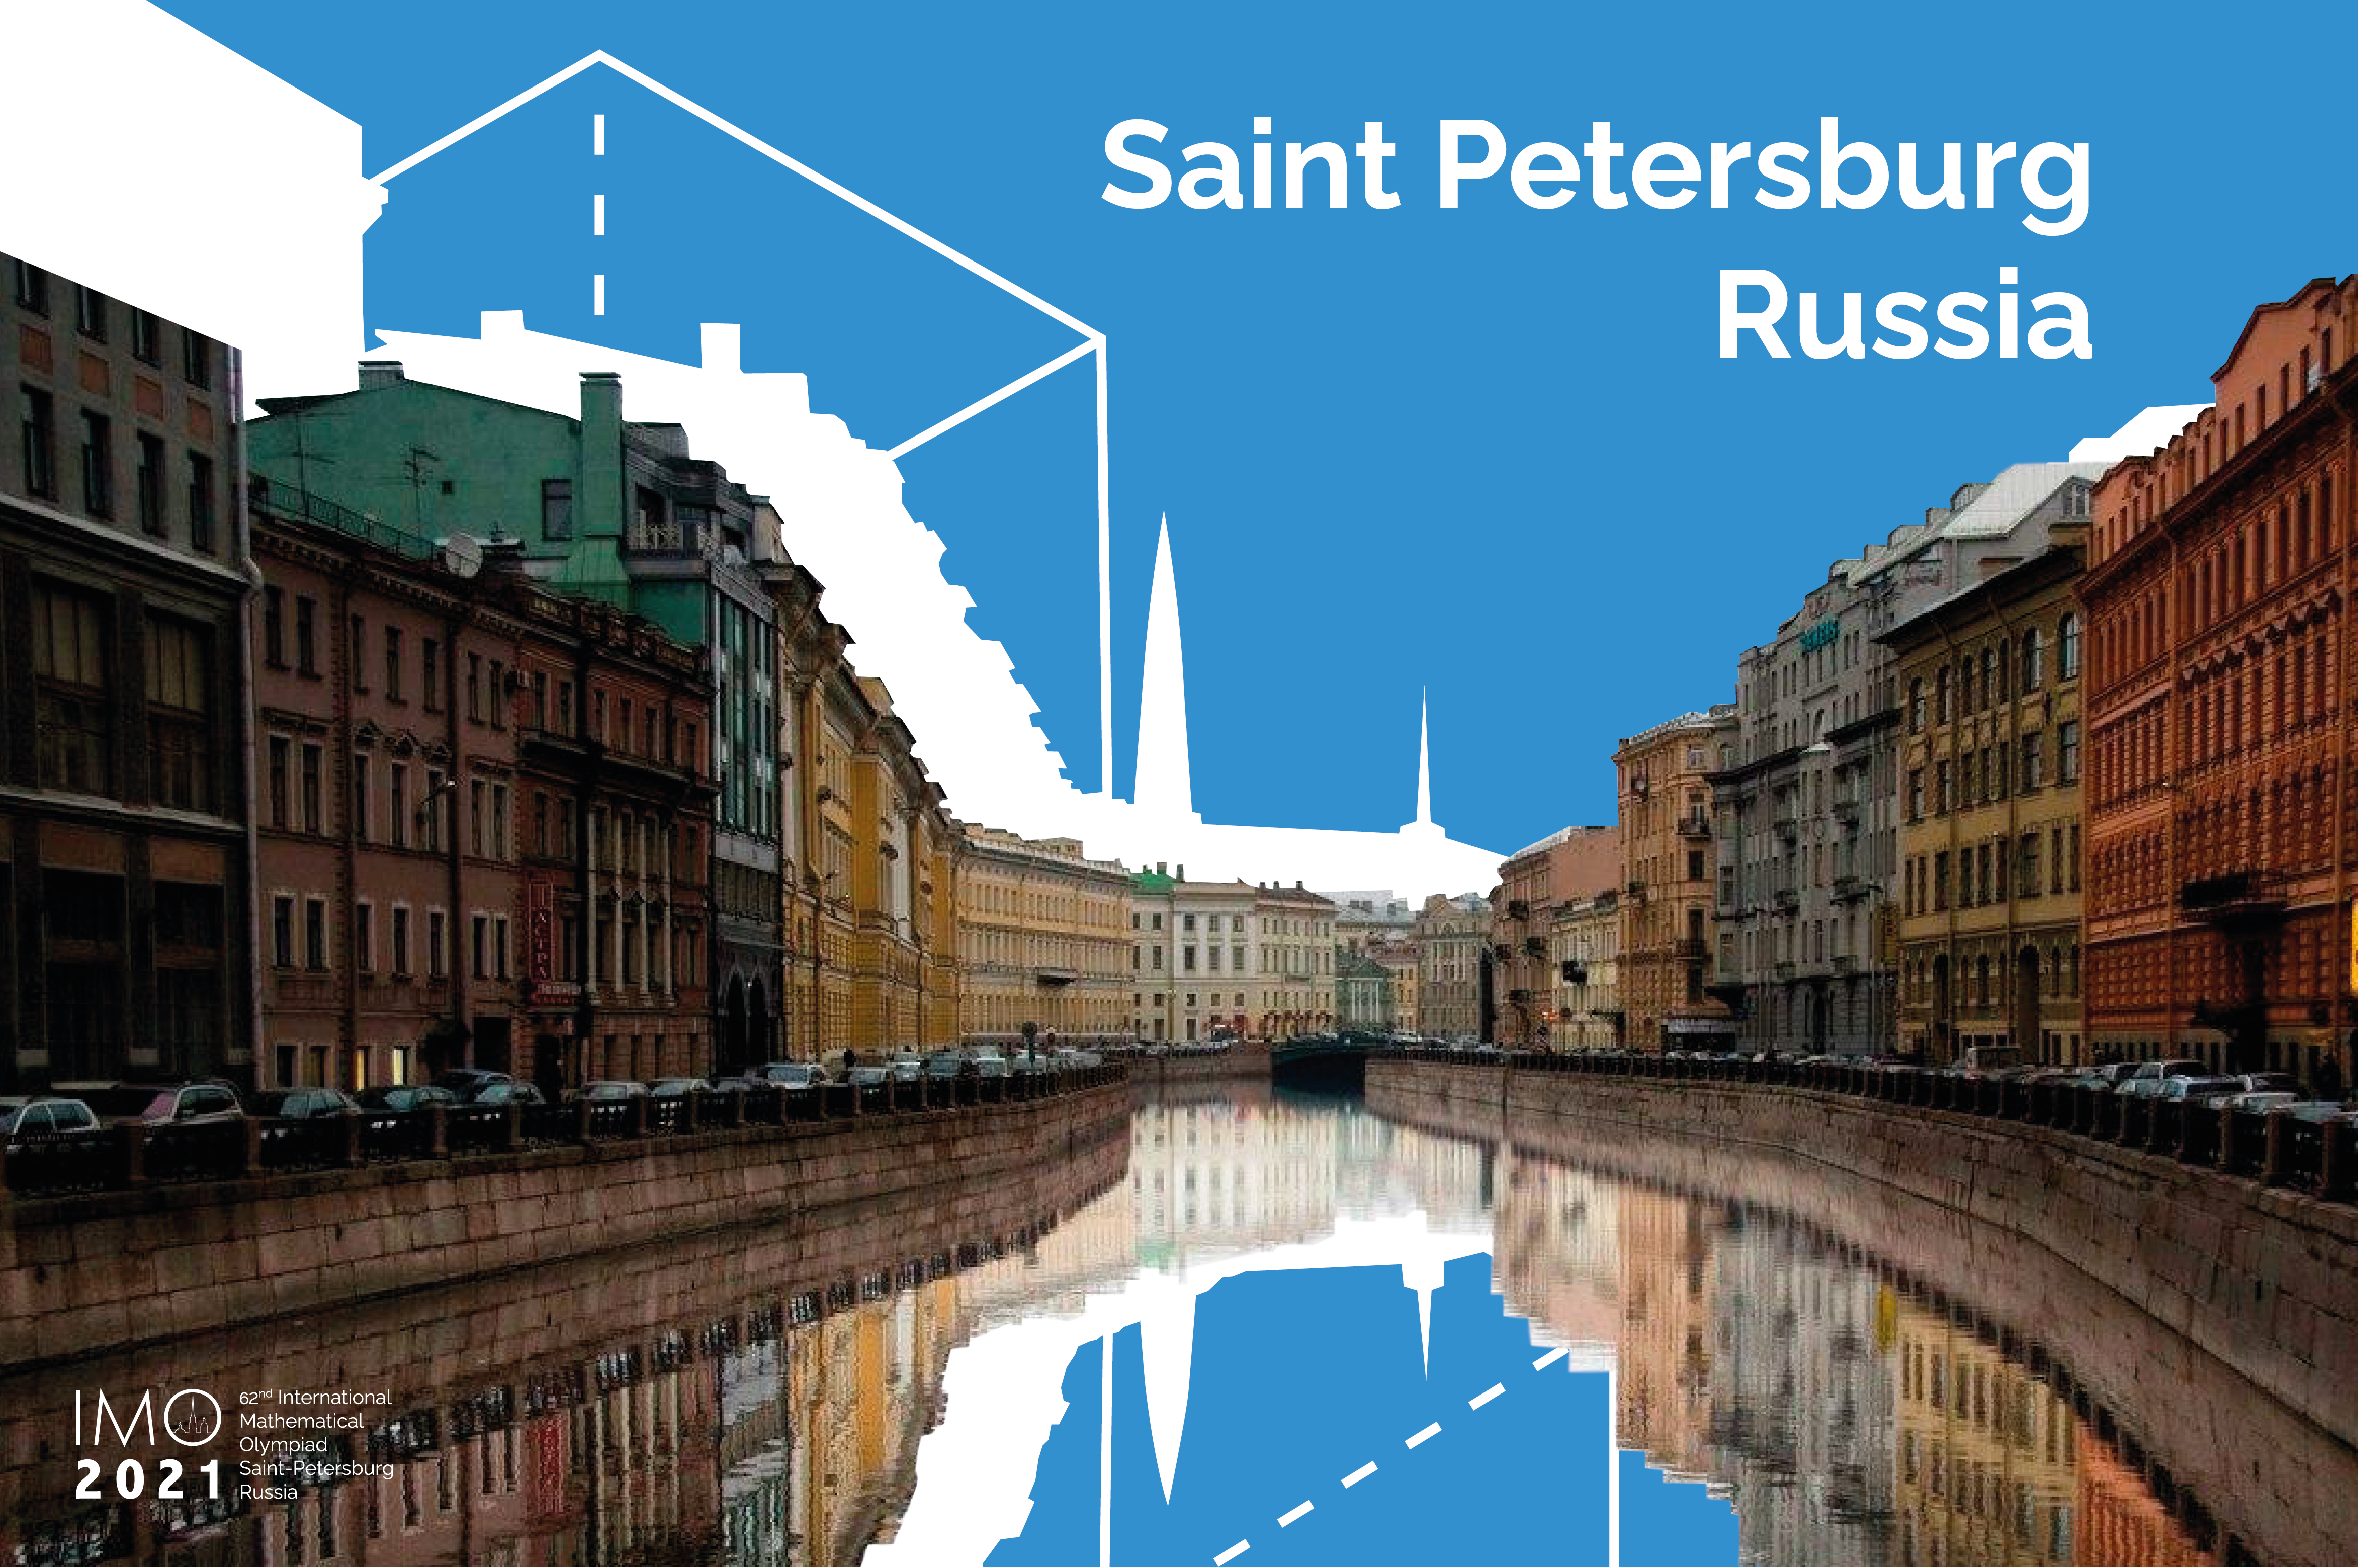 St. Petersburg becomes the center of attraction for mathematicians from all over the world!